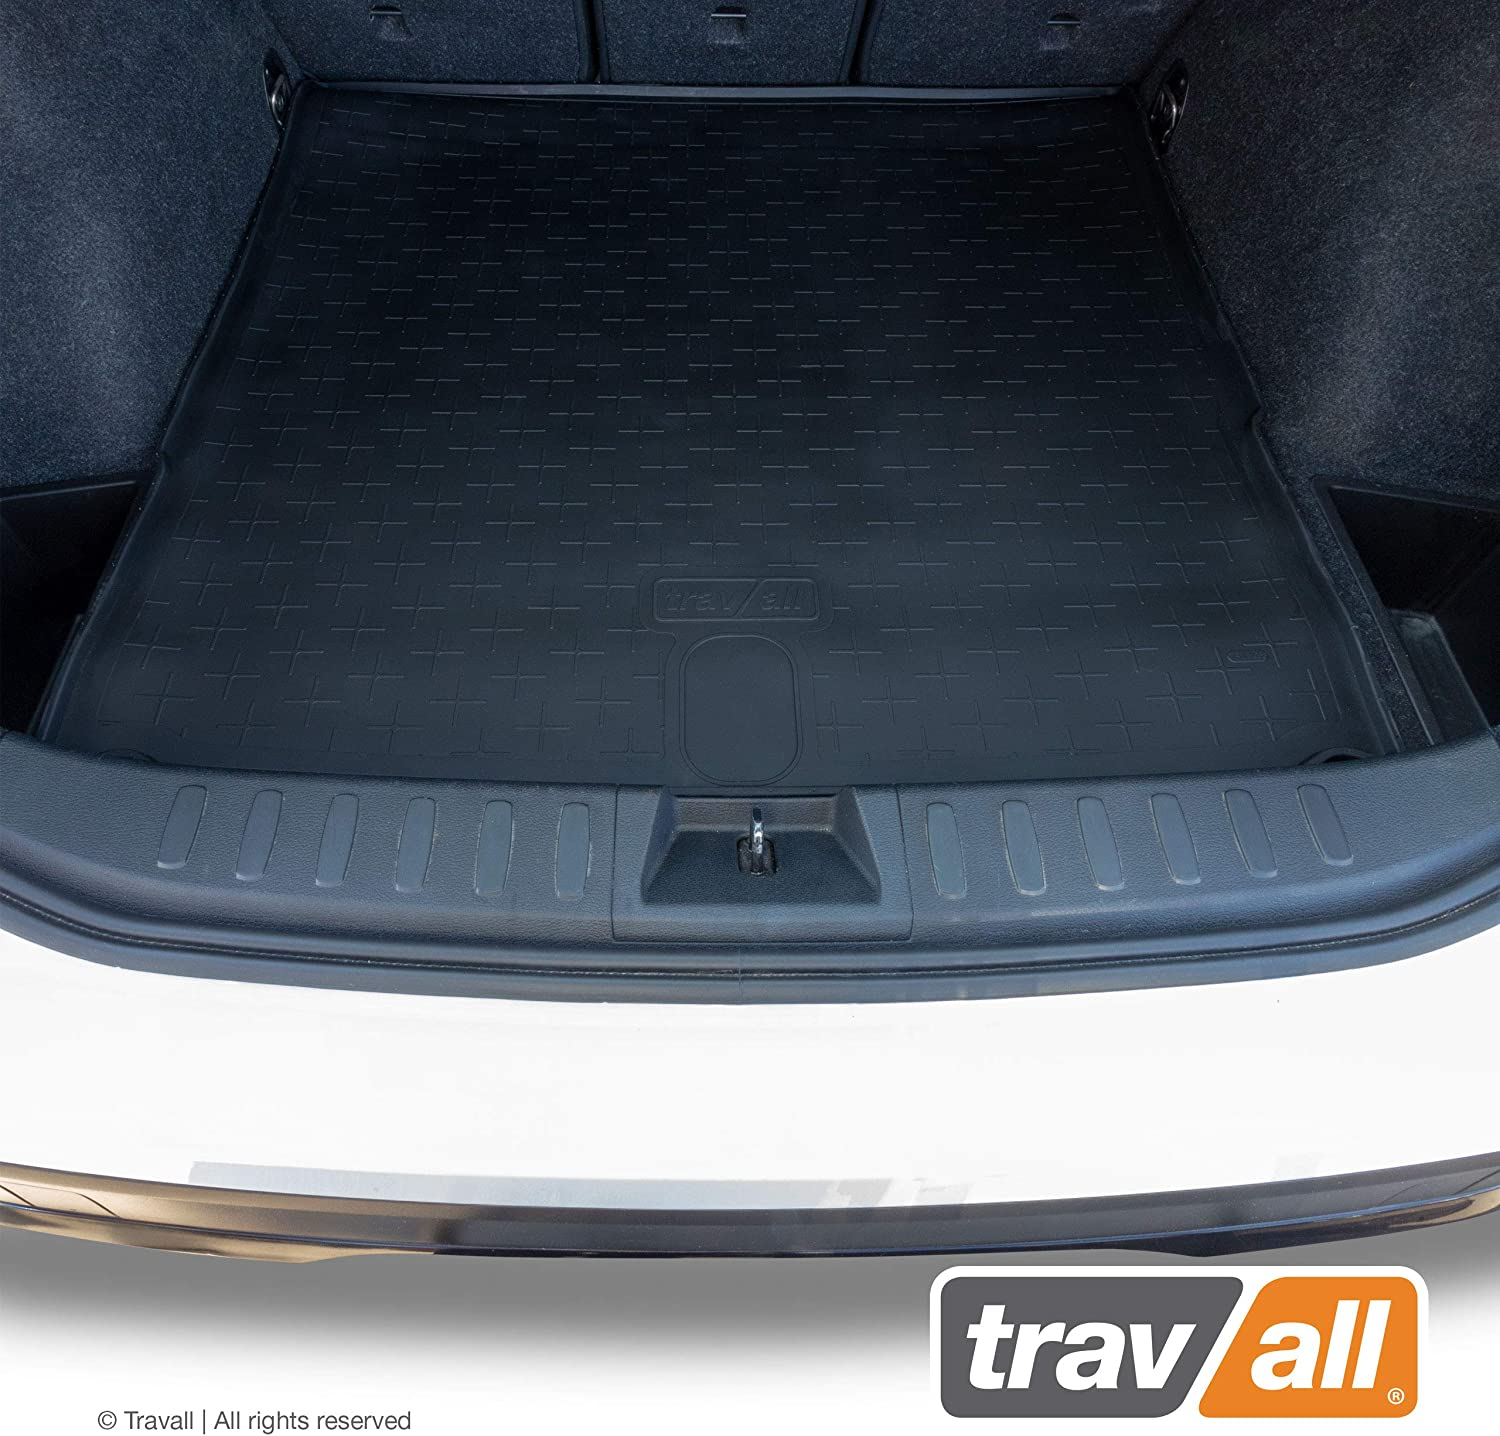 Travall Liner Compatible with BMW X1 E84 (2009-2015) TBM1068 - All-Weather Black Rubber Trunk Mat Liner